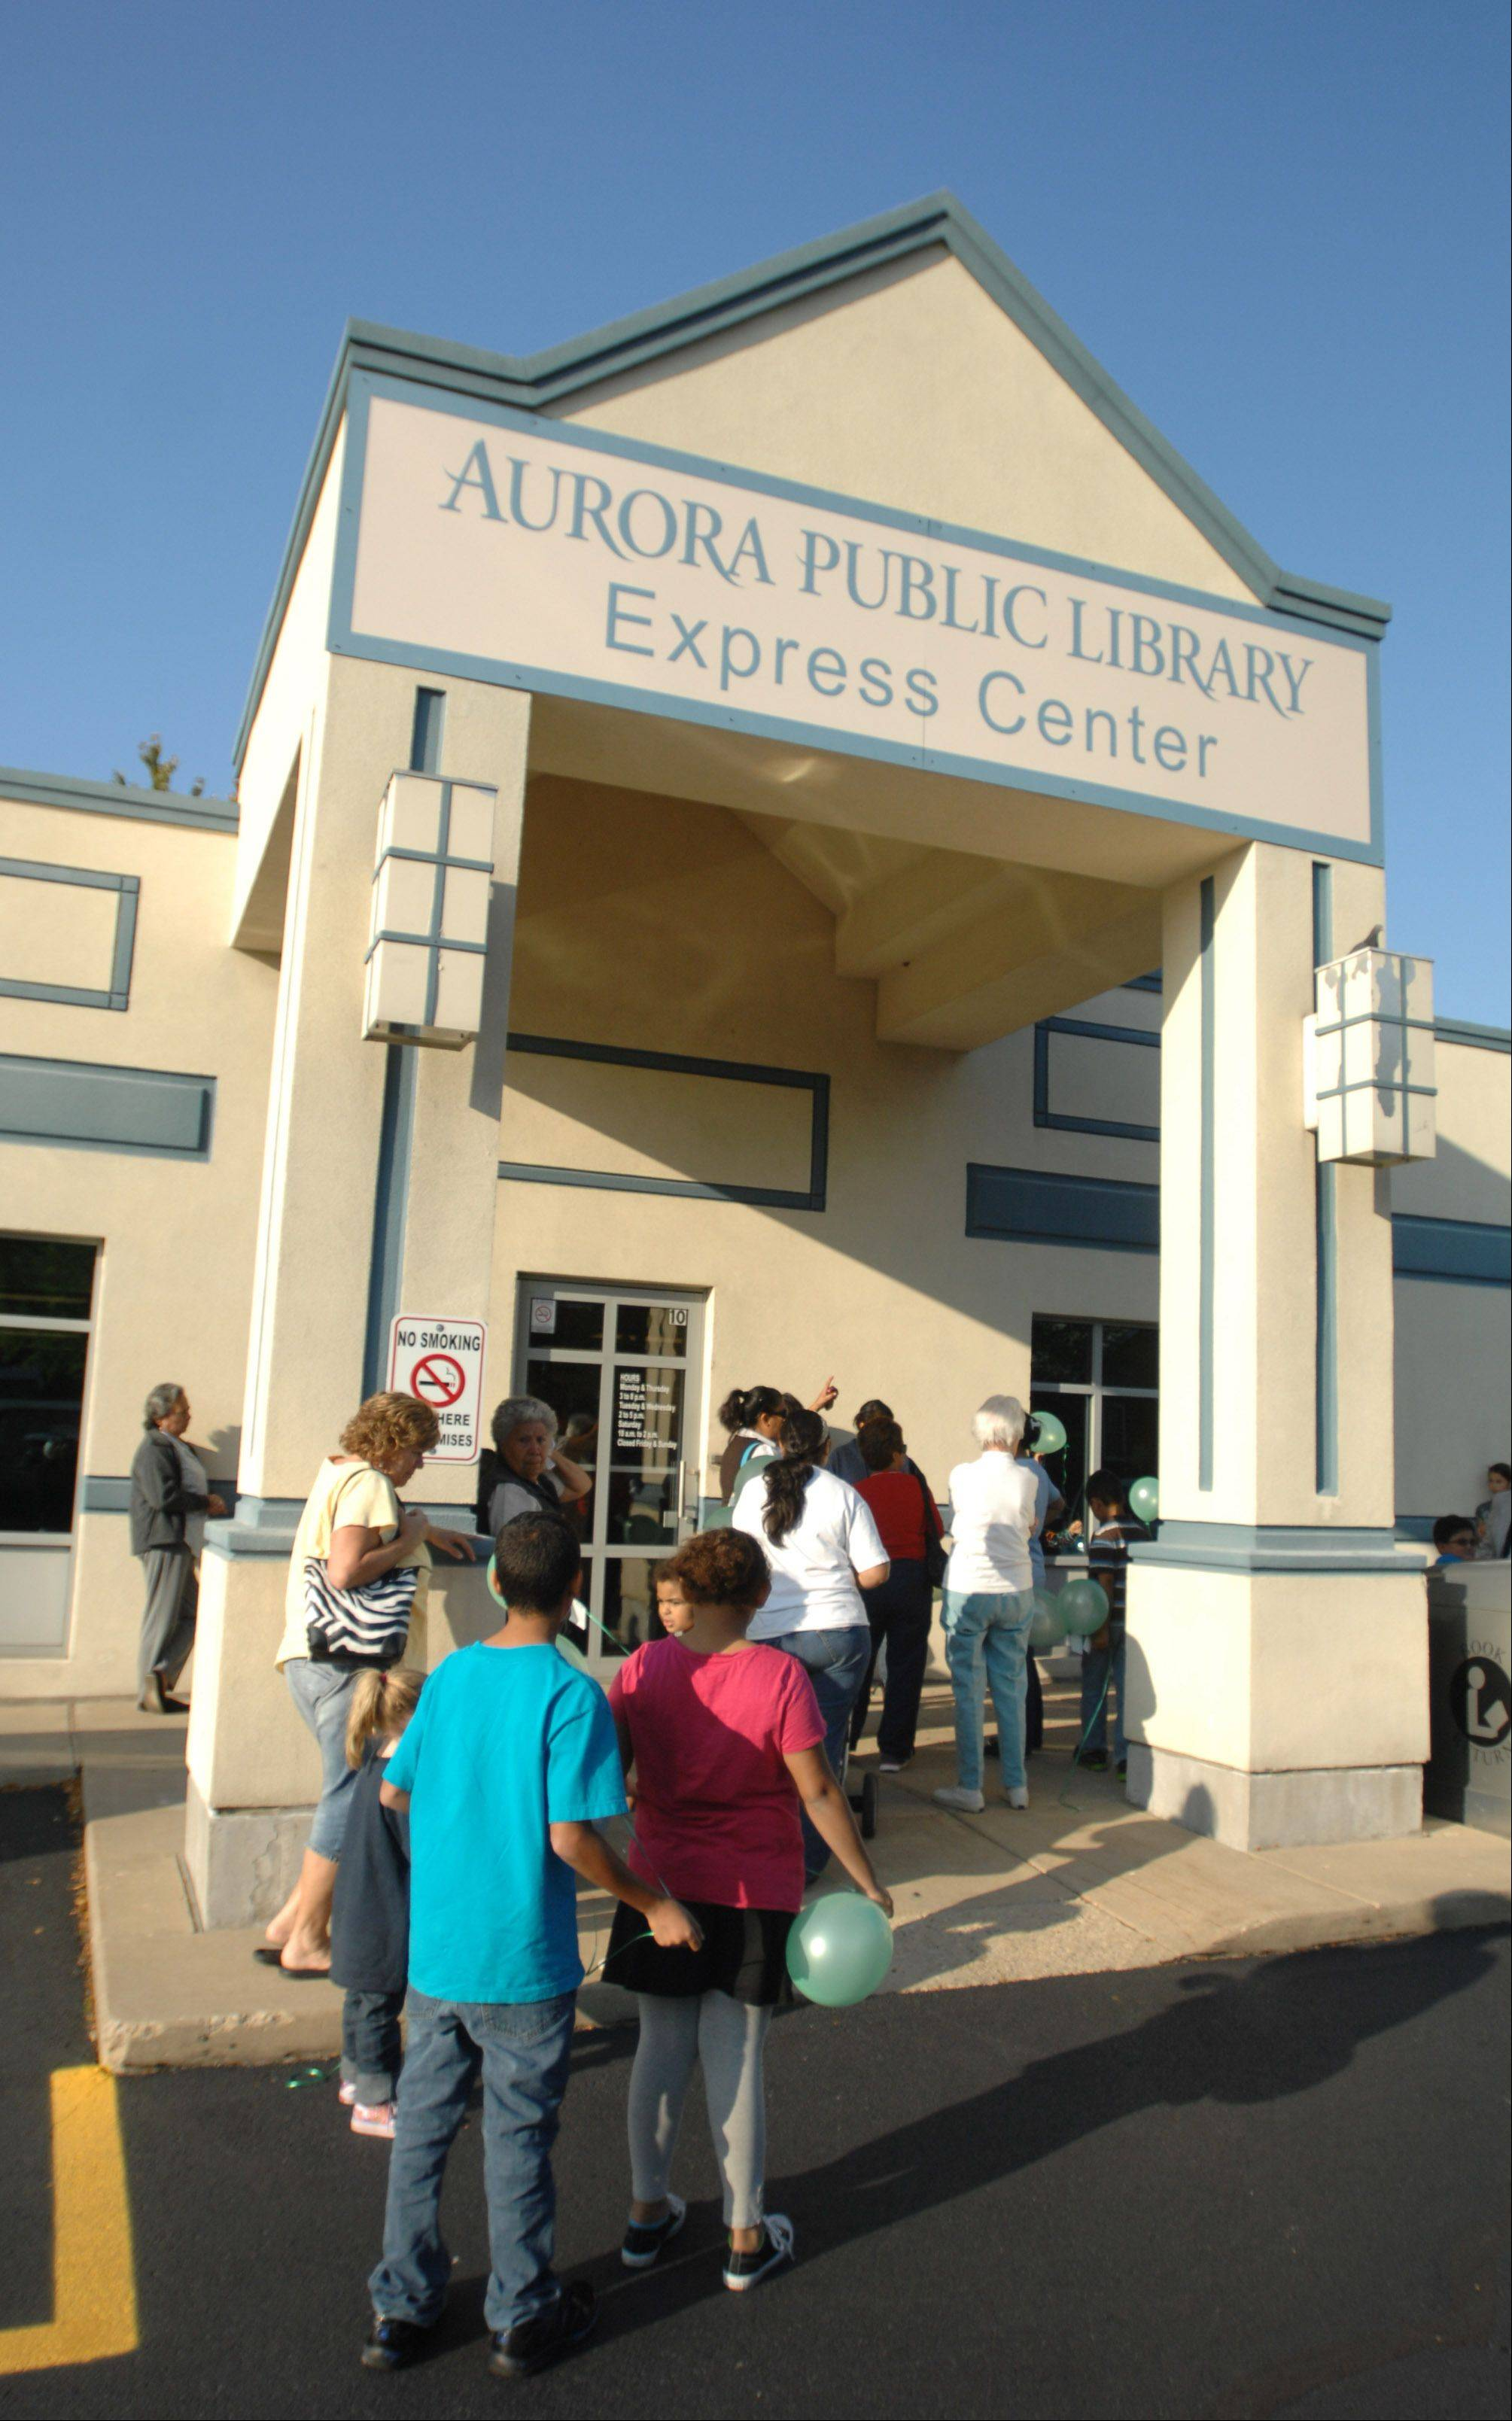 Local children wait for the doors to open at the new Aurora Public Library's Express Center Friday. It's been open since Sept. 17, but Friday was a special event to welcome the public.